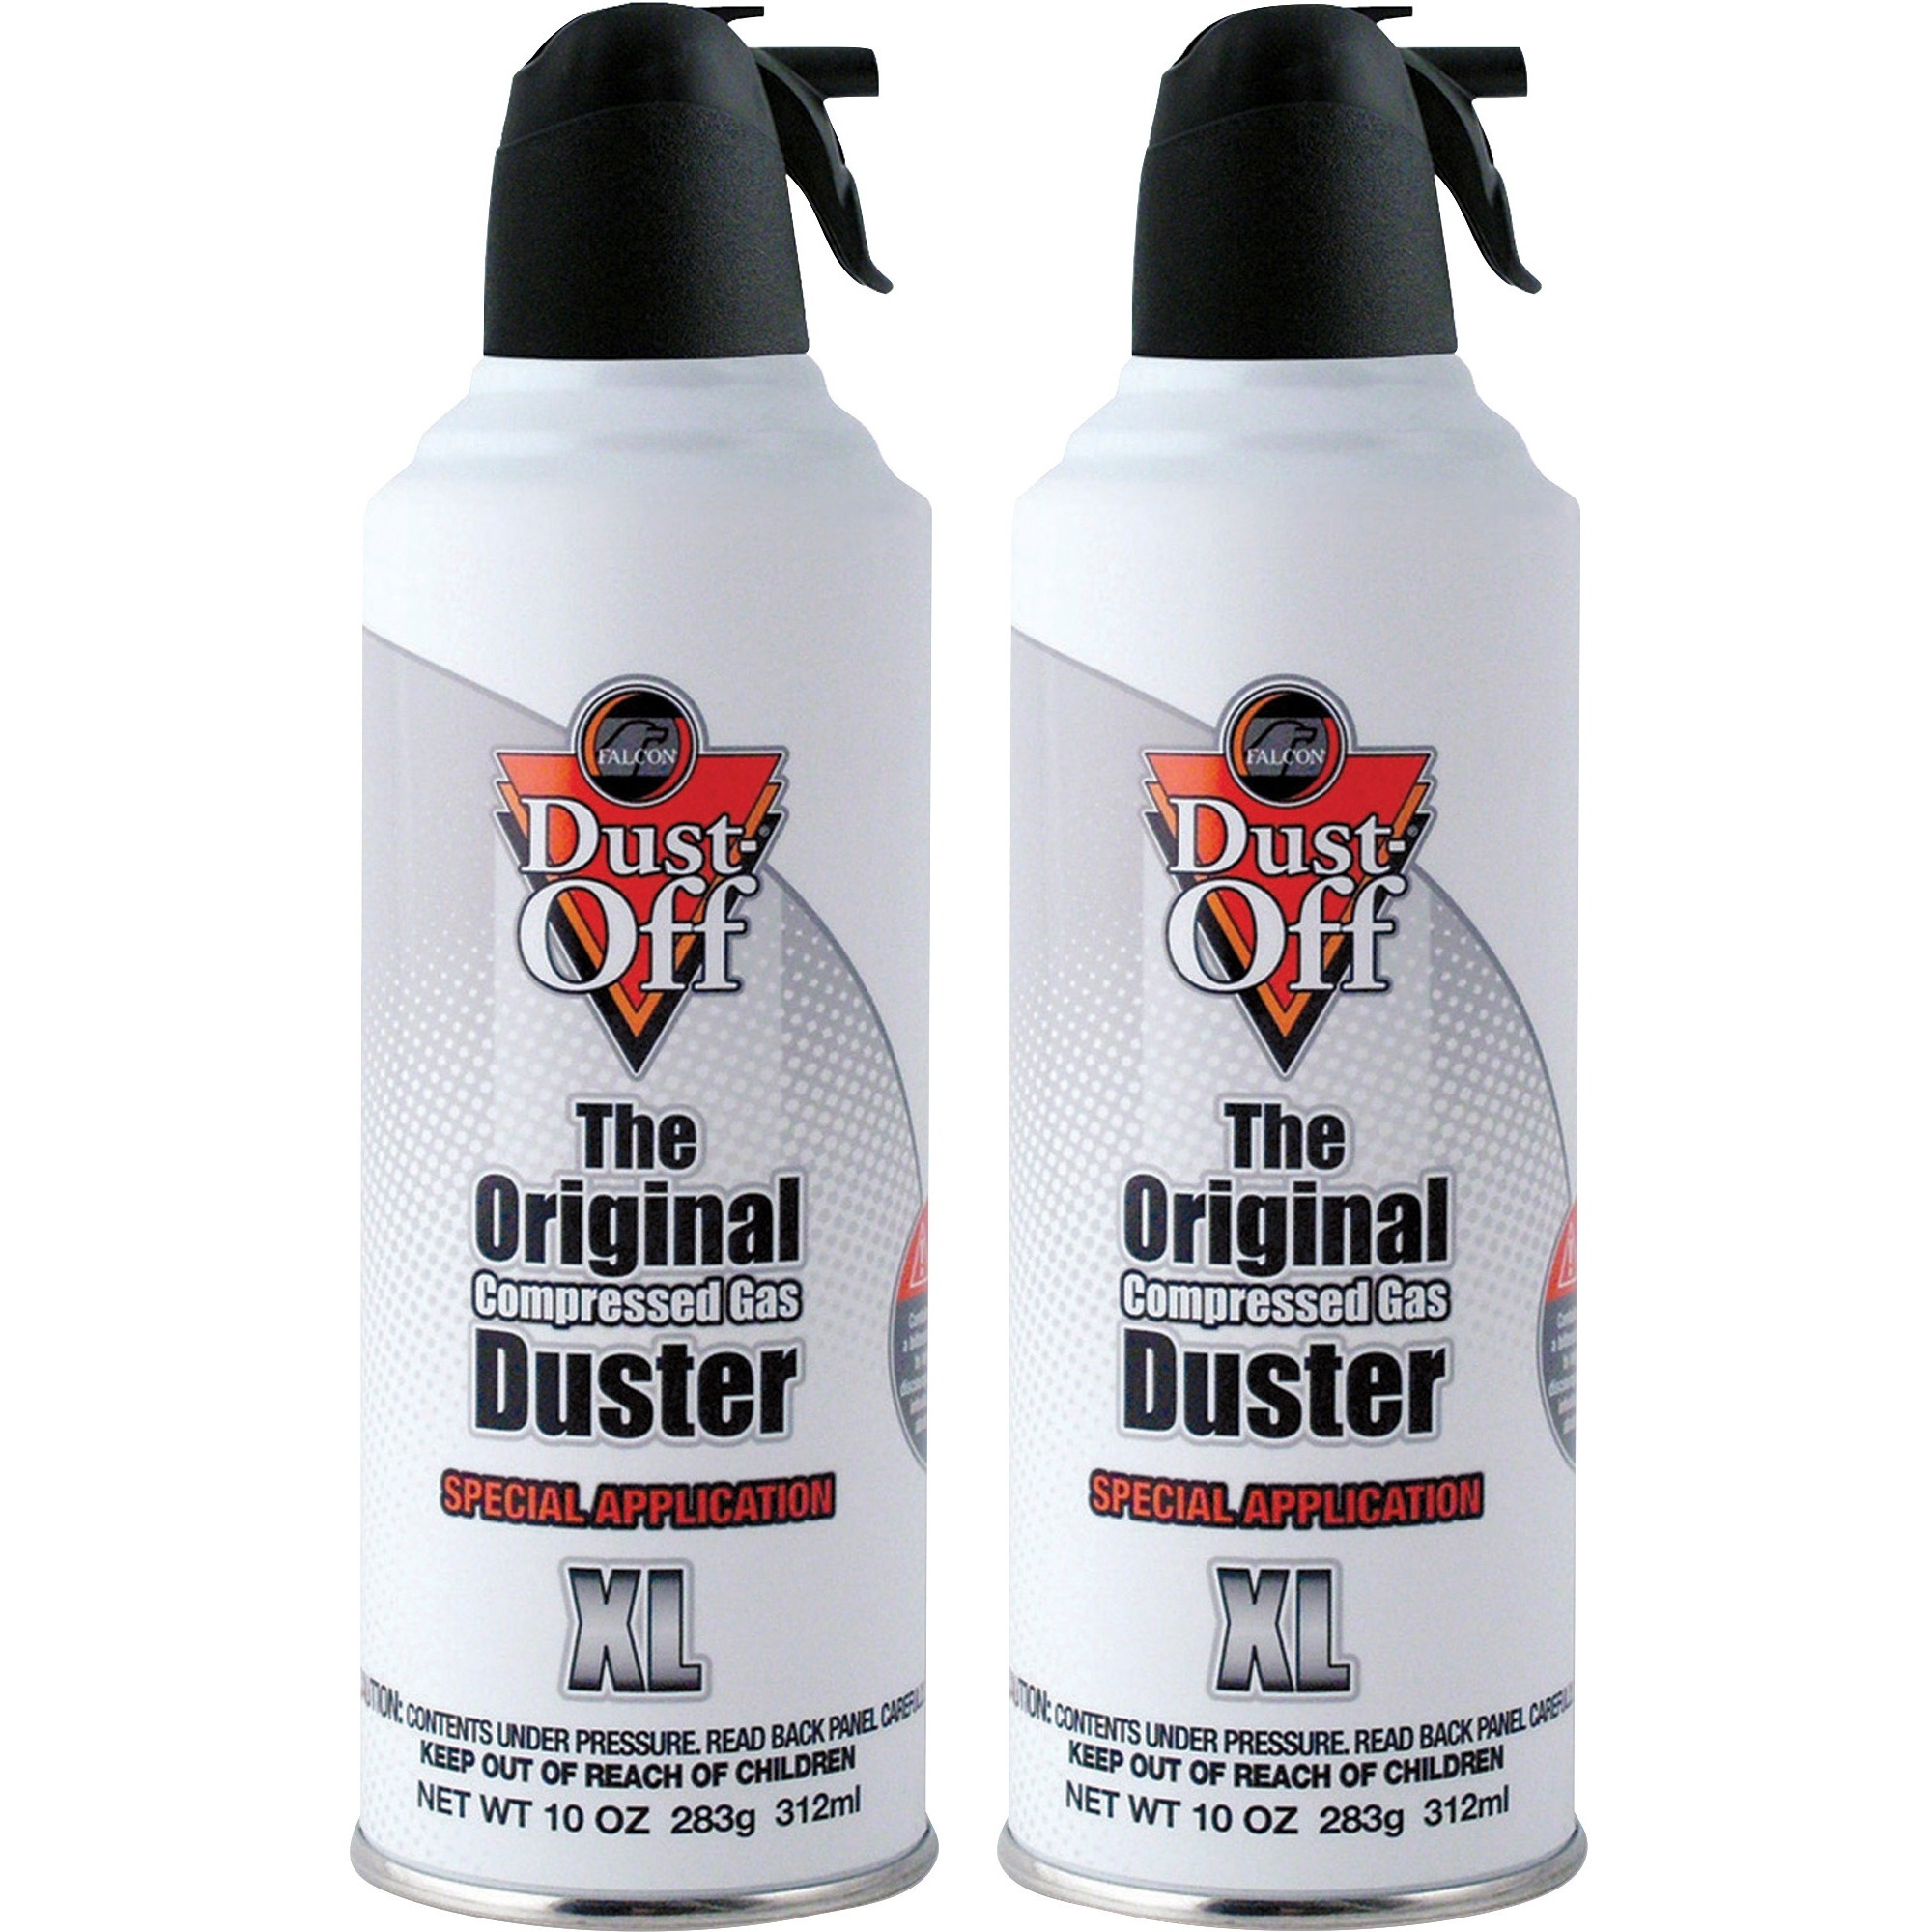 Falcon, FALDPNXL2, Dust-Off Non-flammable Air Dusters, 2 / Pack, Gray